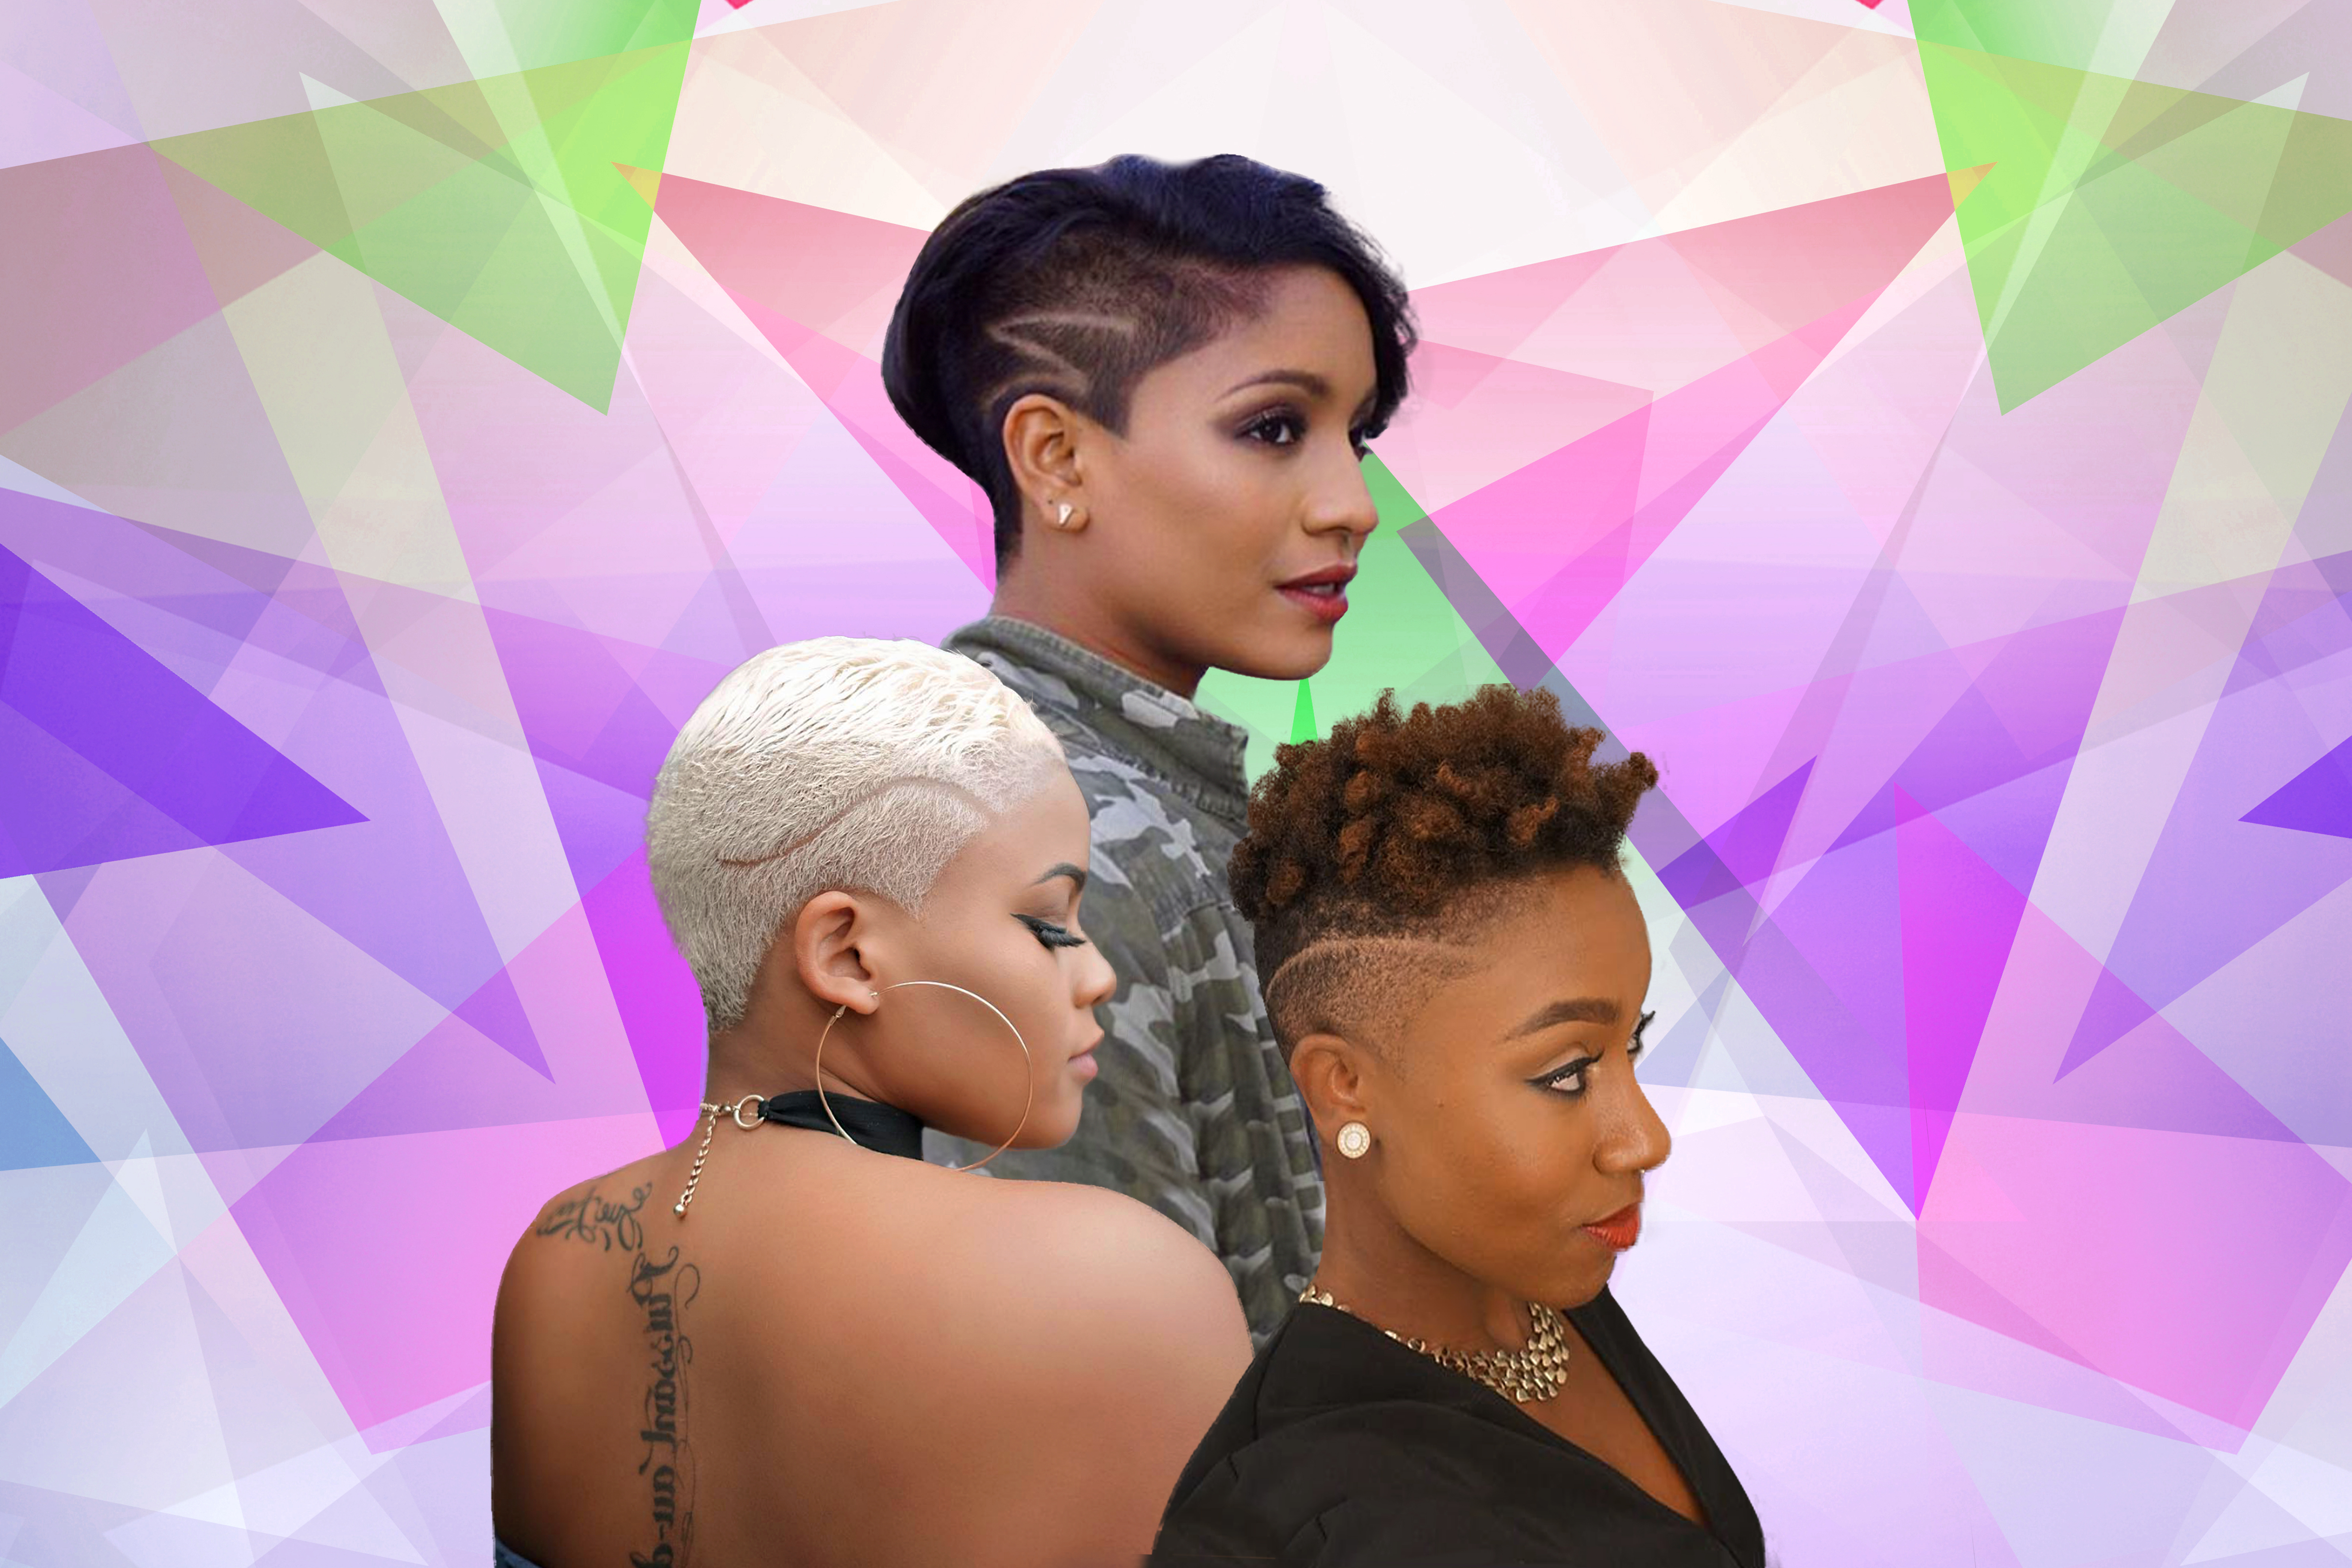 Short Haircut Designs Your Barber Needs To See – Essence Pertaining To Short Hair Cut Designs (View 17 of 25)